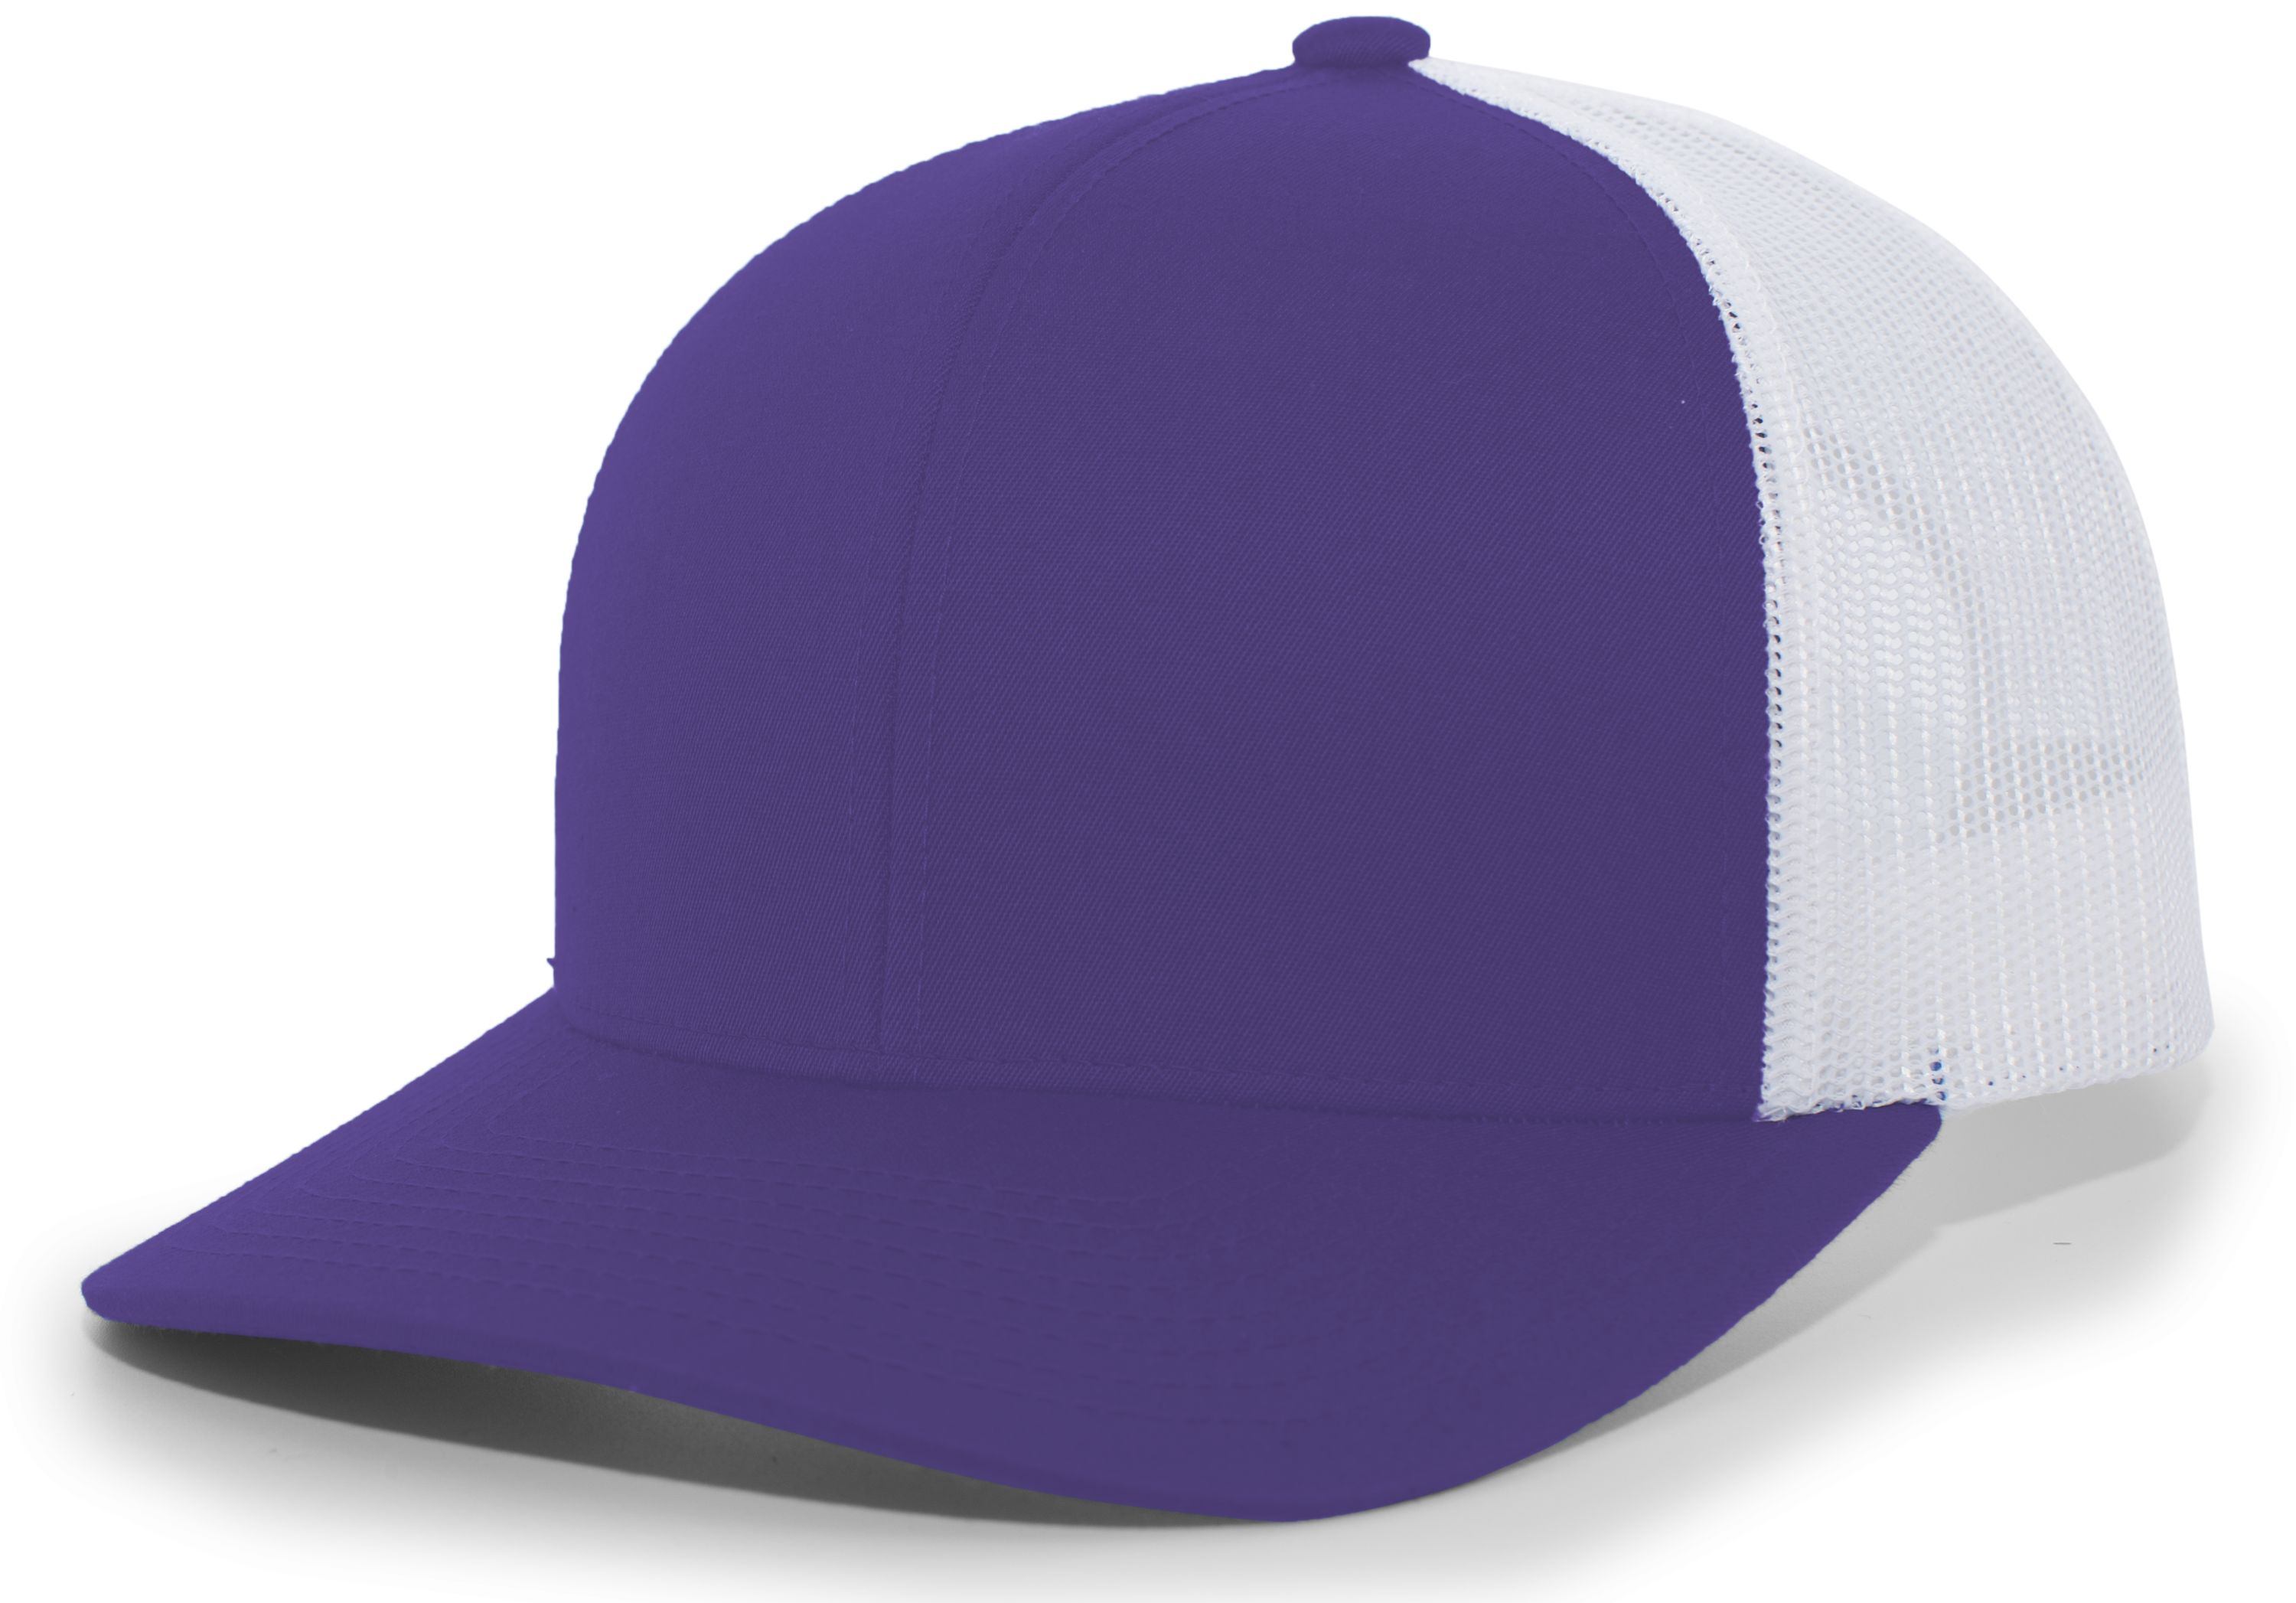 Trucker Snapback Cap - PURPLE/WHITE/PURPLE